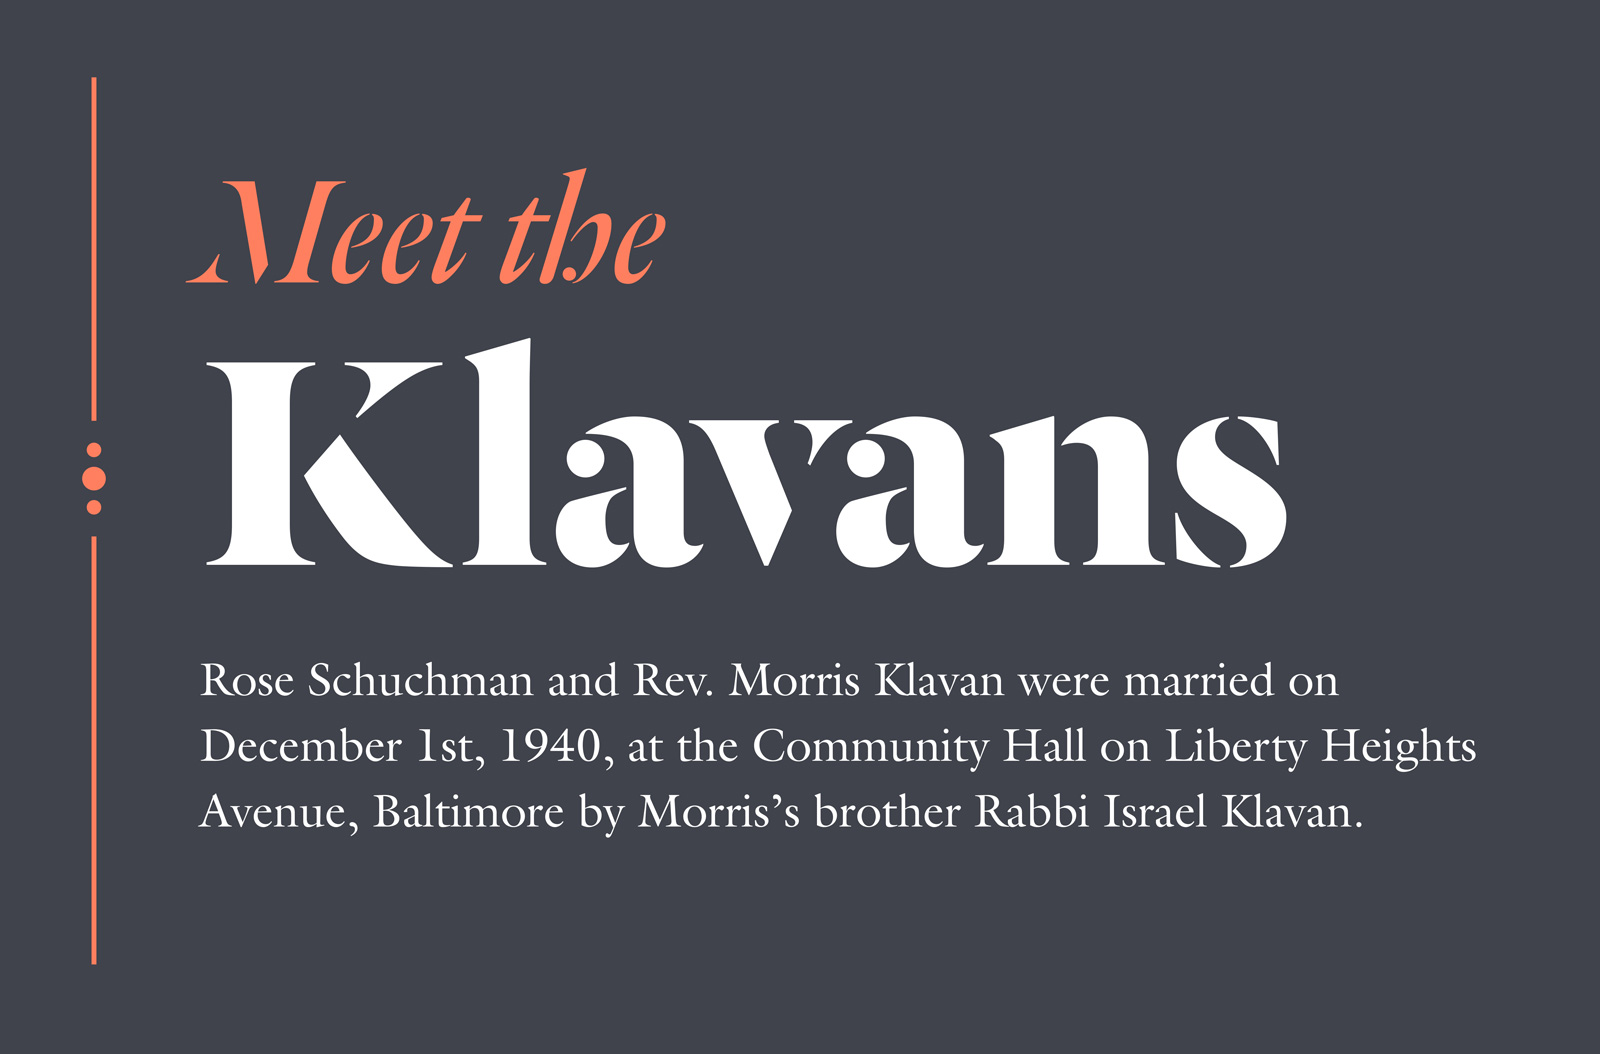 Just Married text panel: Meet the Klavans, detail